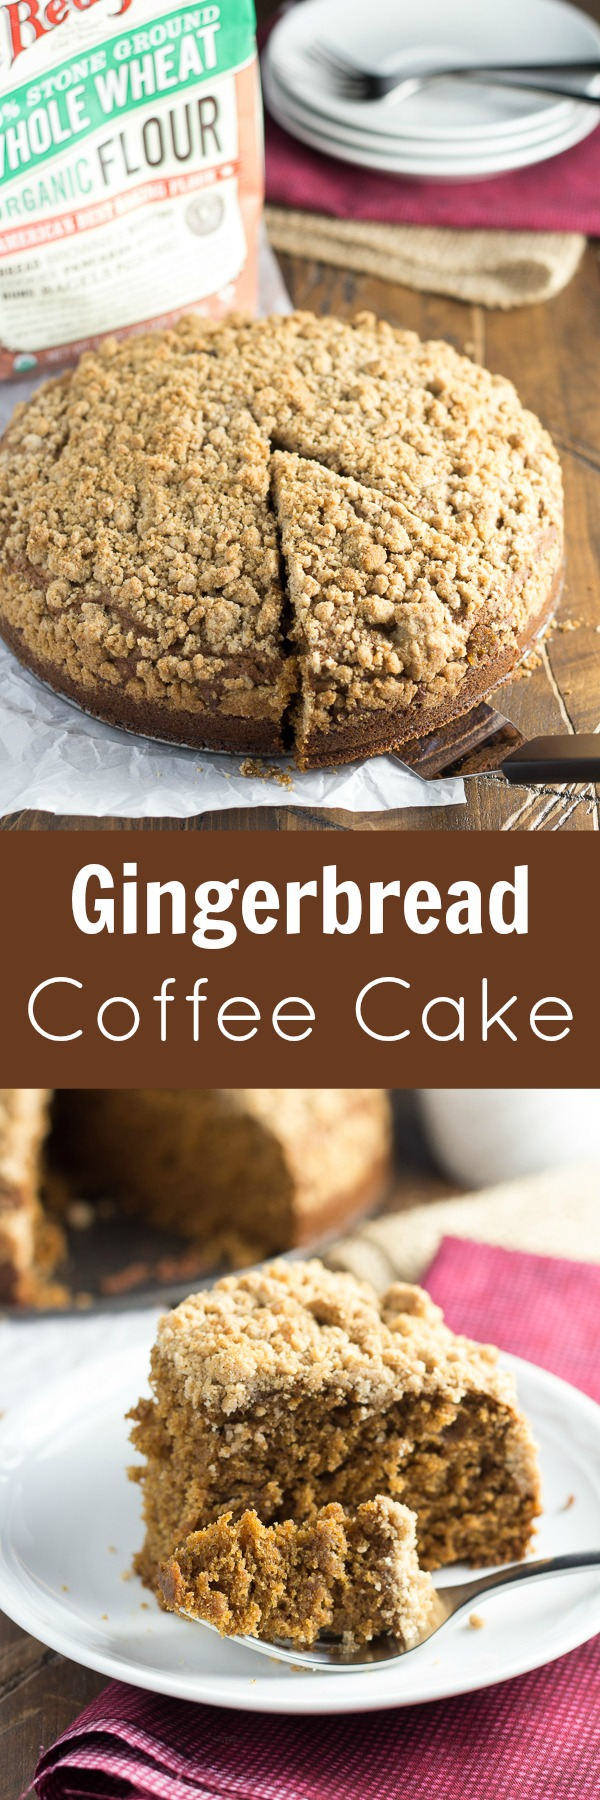 Gingerbread Coffee Cake, the perfect holiday breakfast!